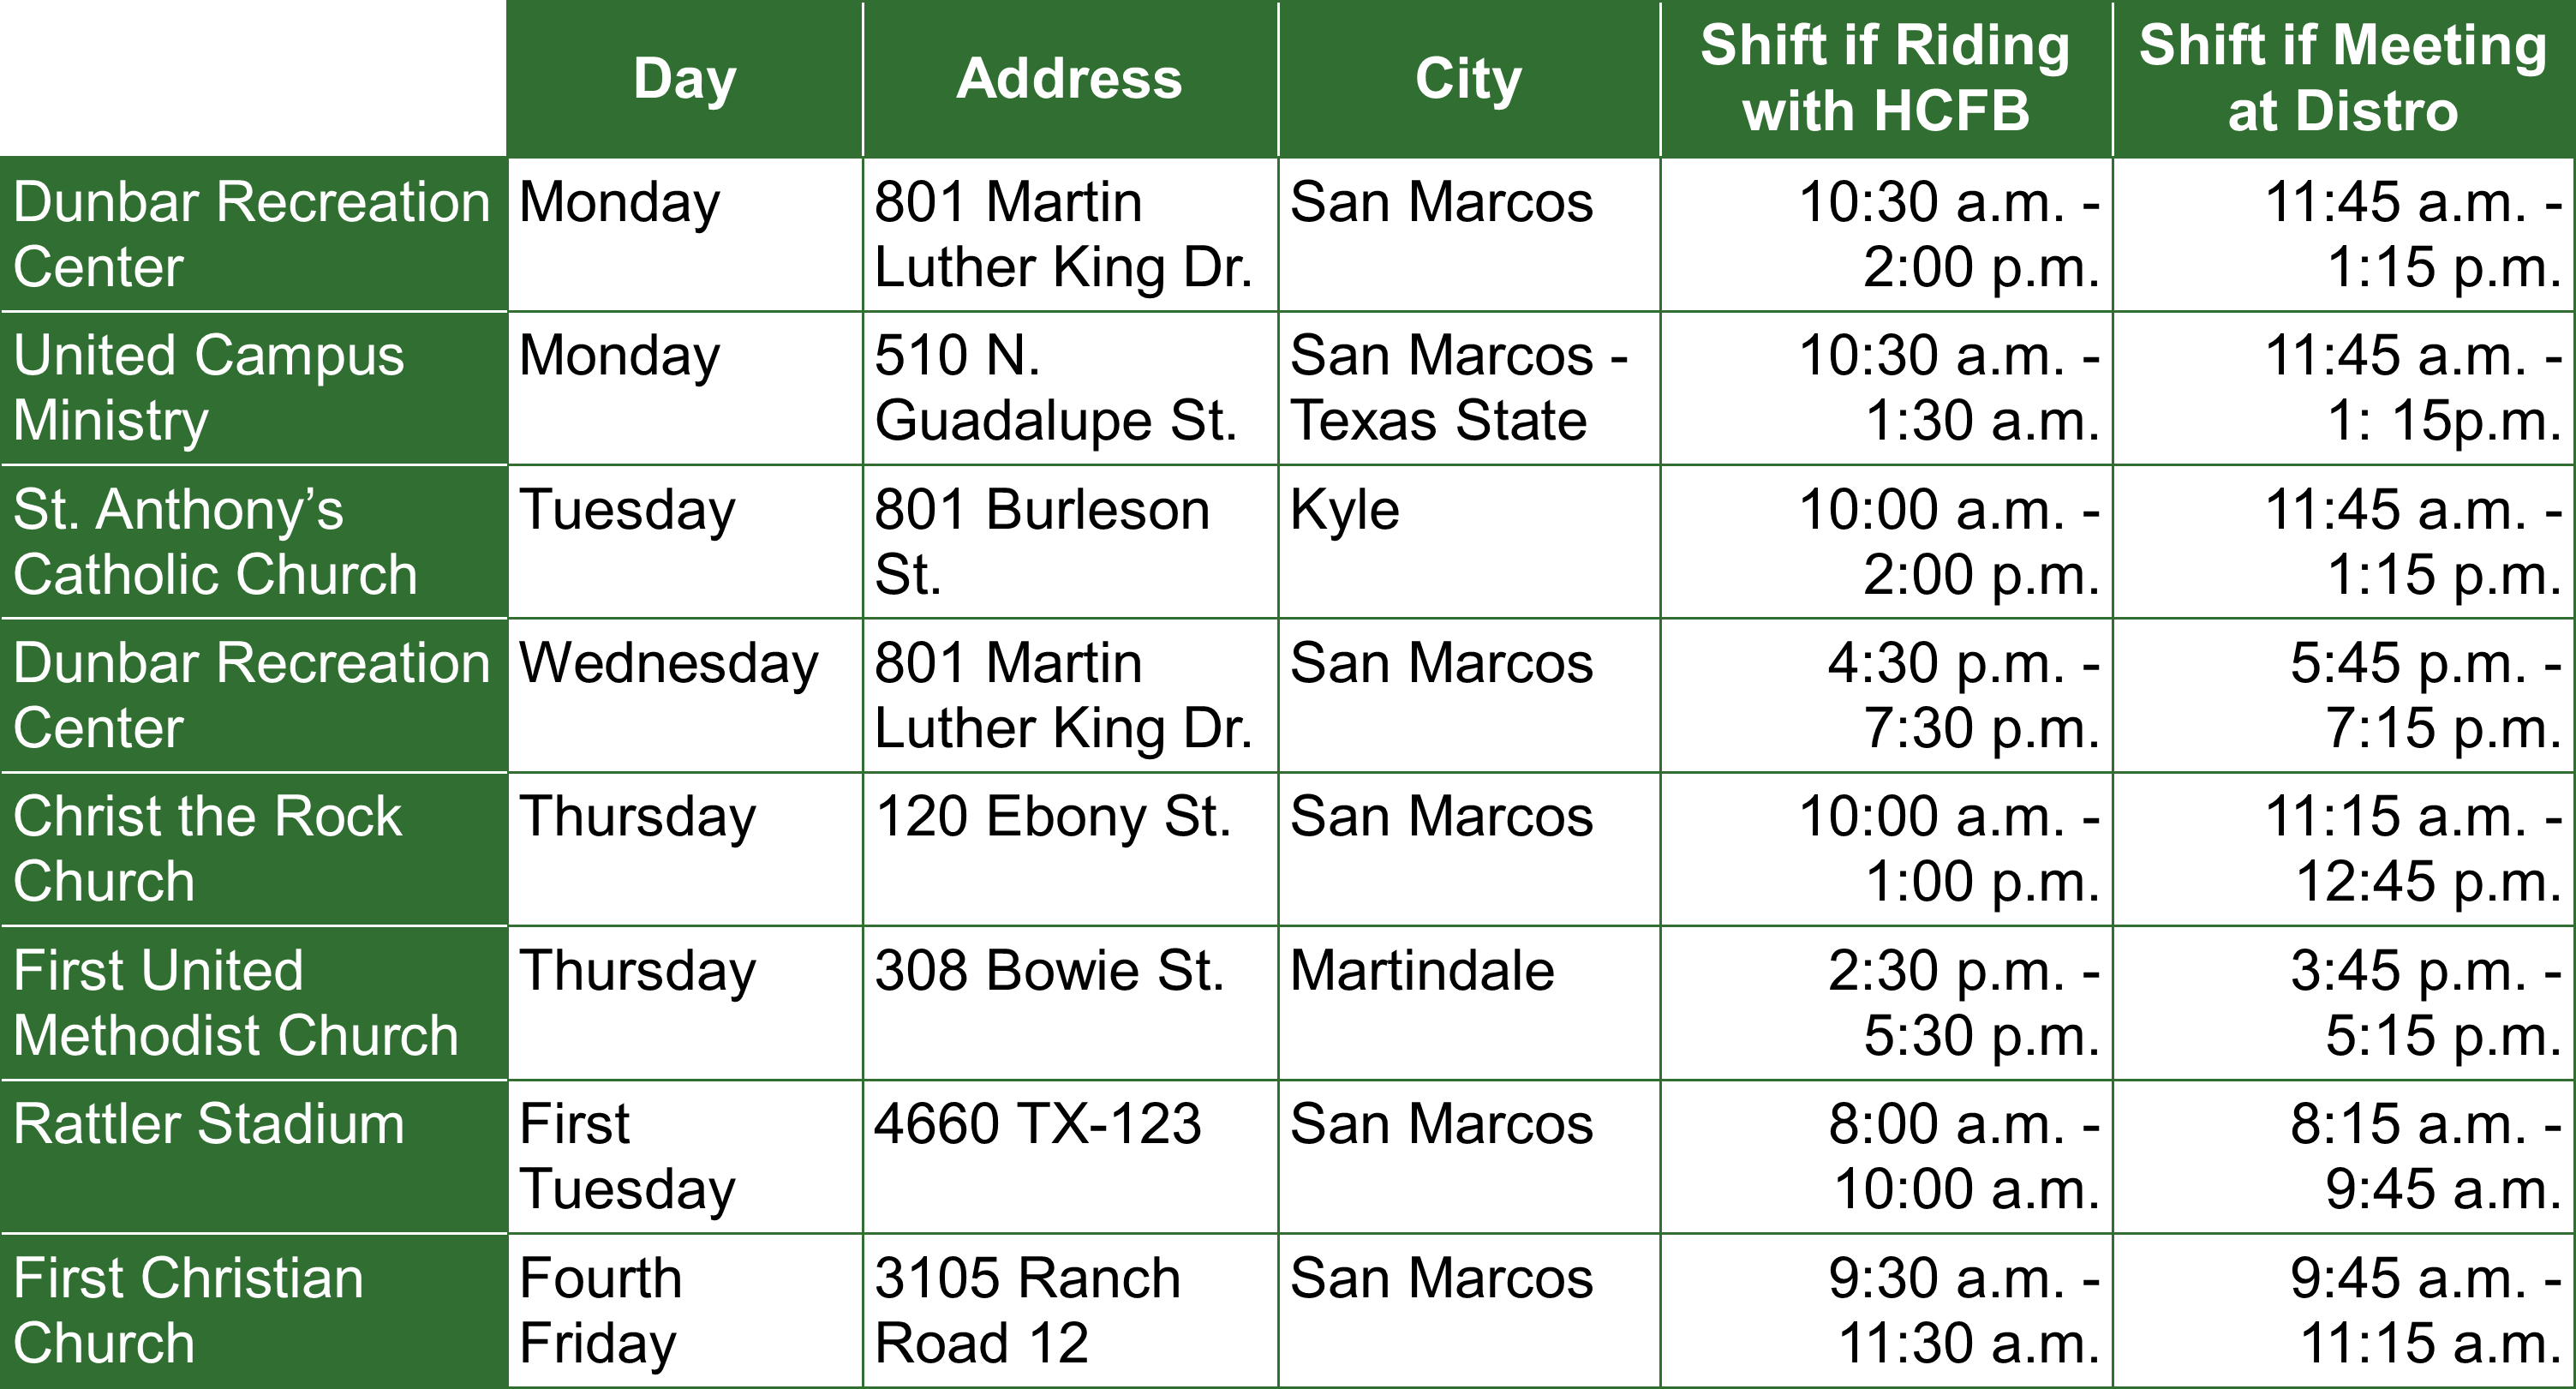 Schedule of Shifts